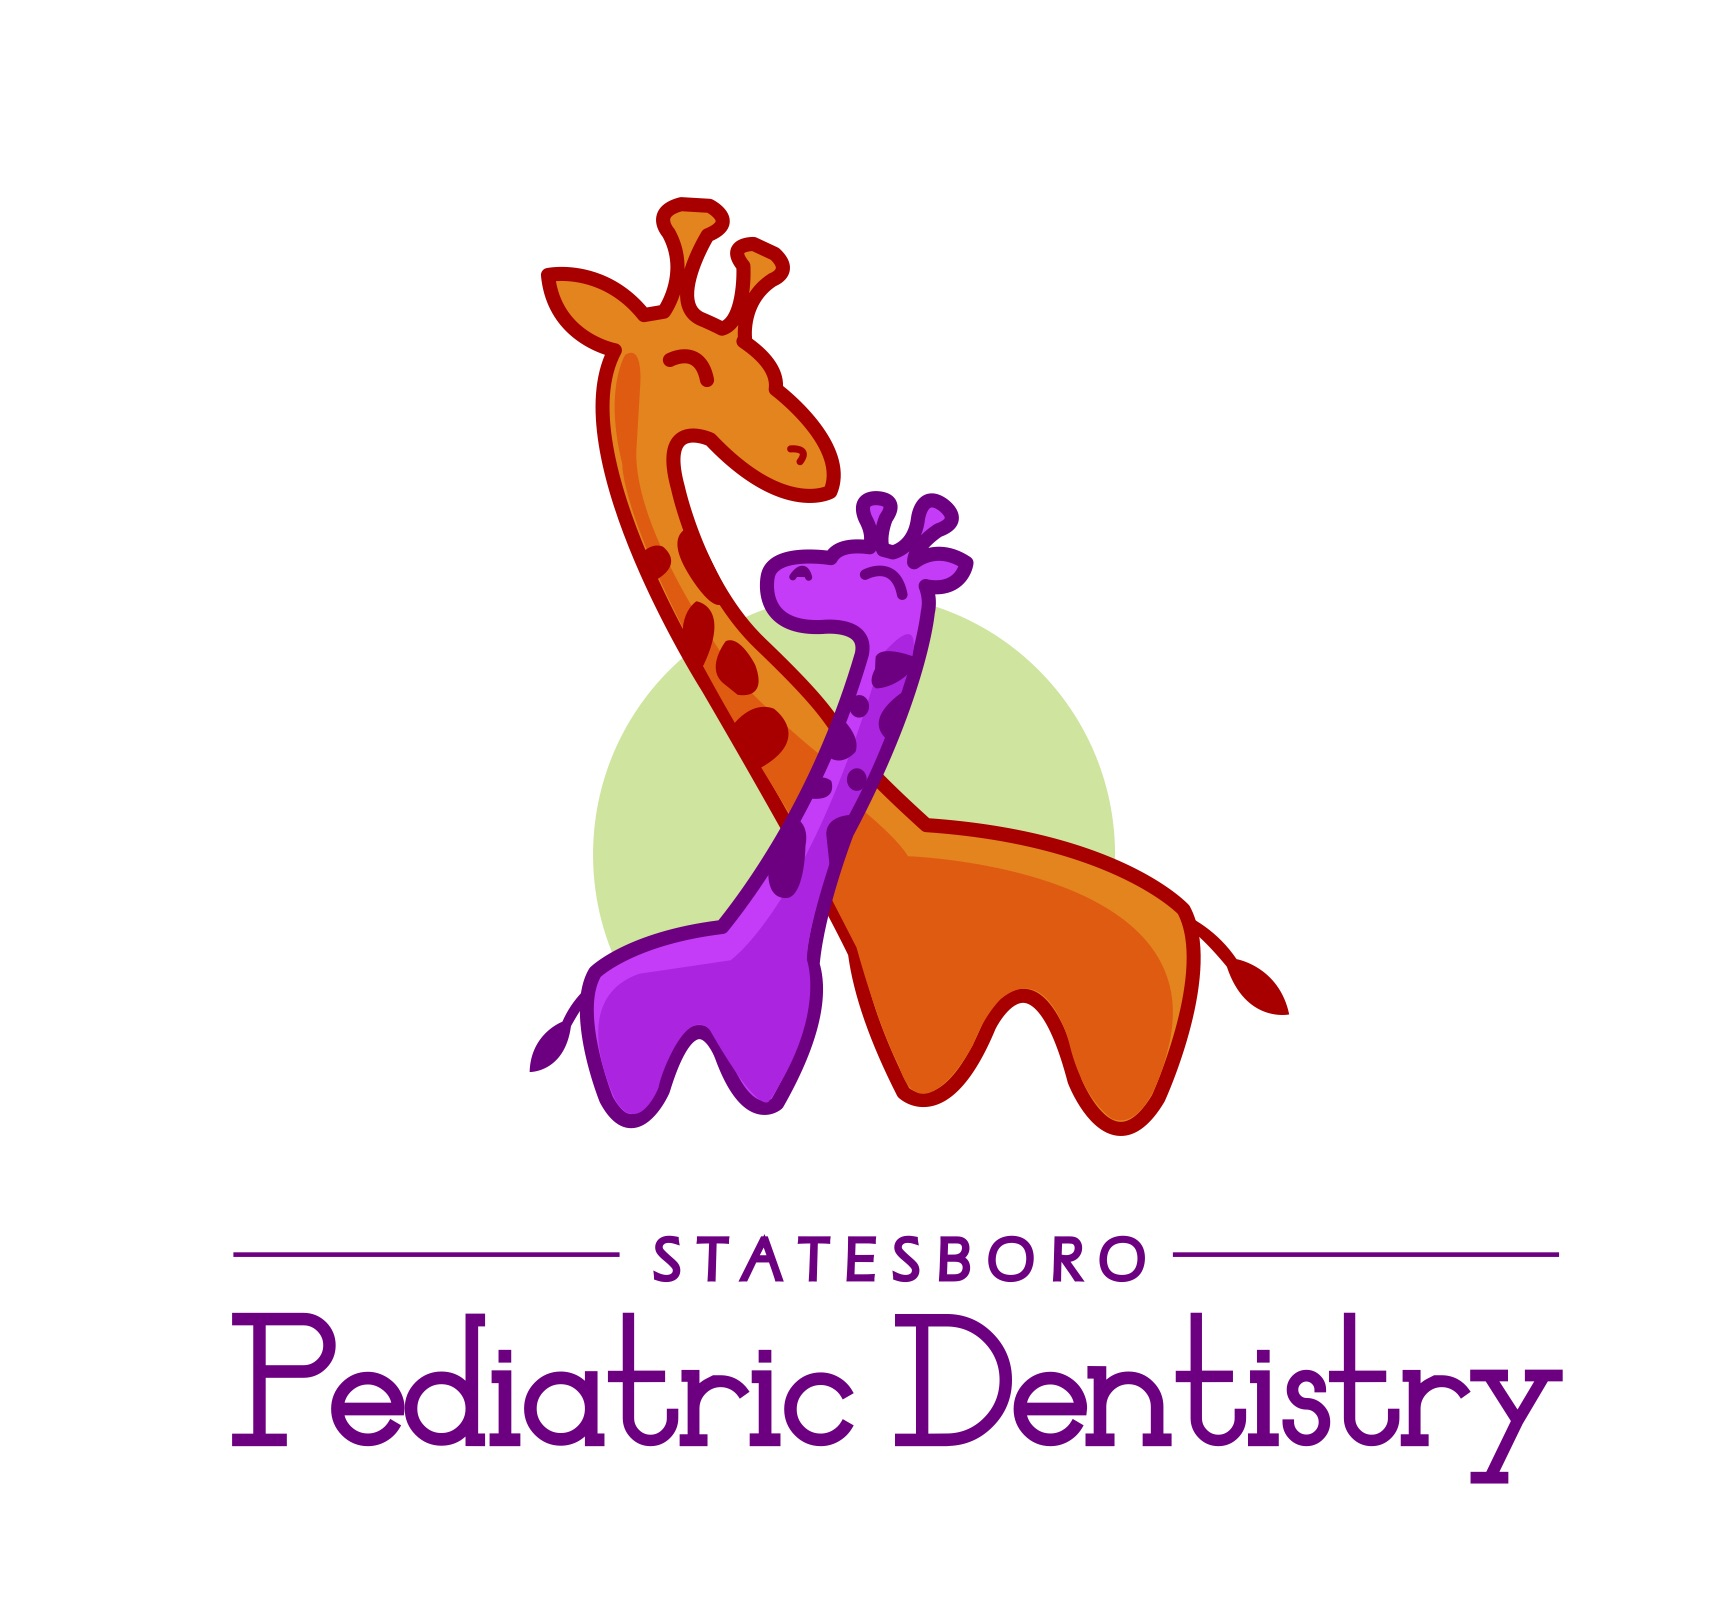 Statesboro Pediatric Dentistry